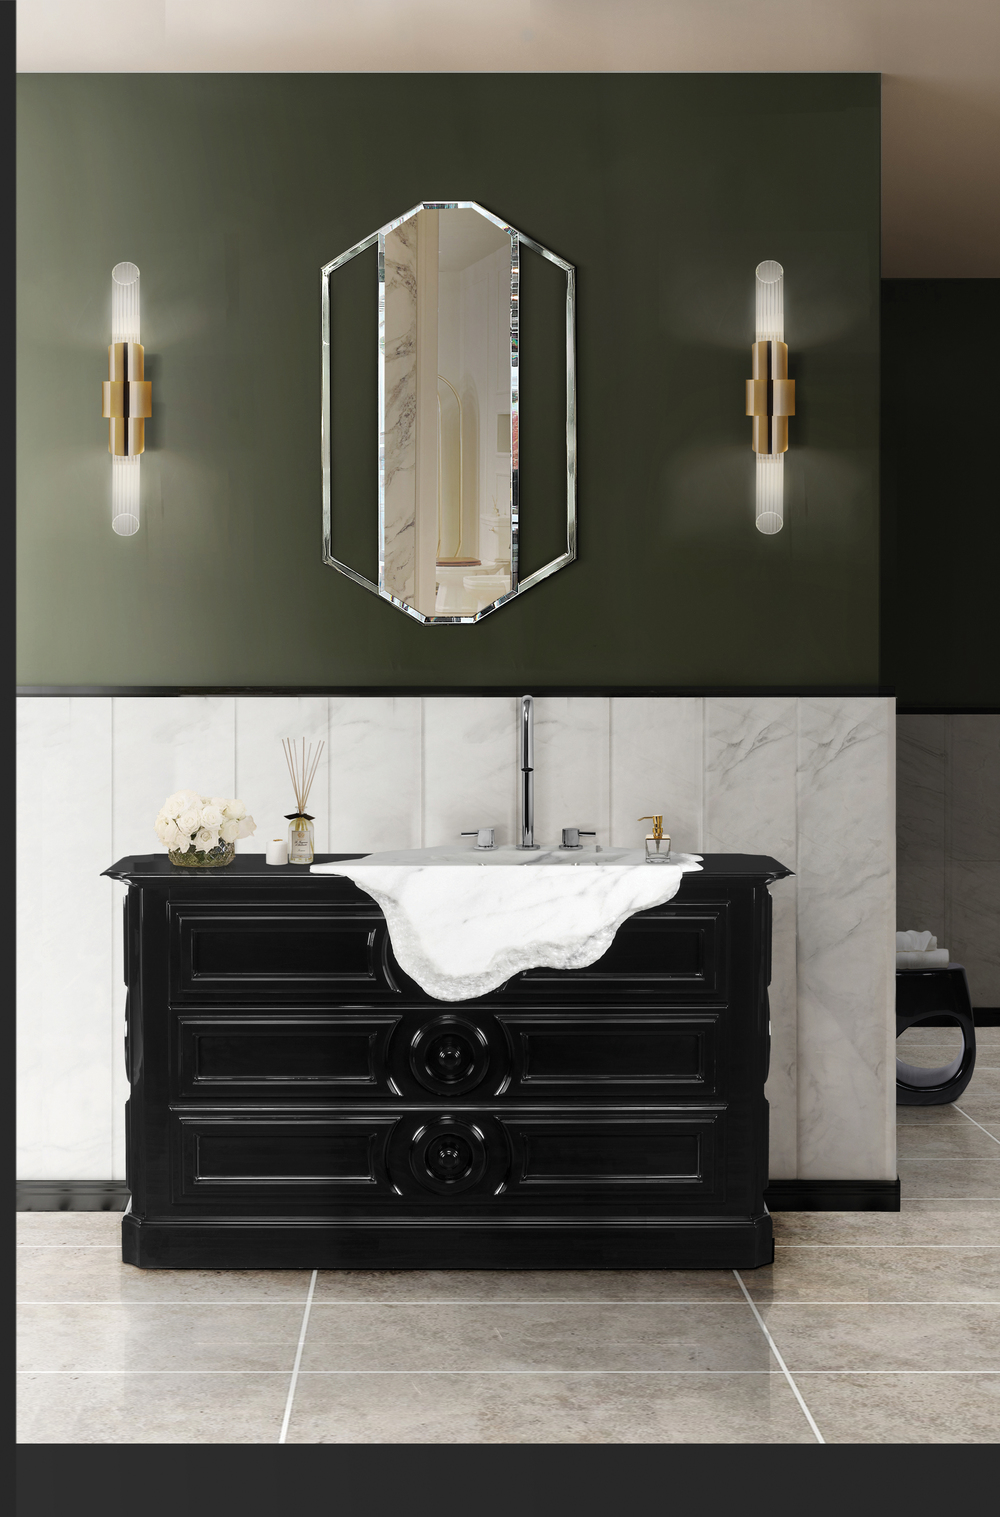 Elegant Washbasins - Petra elegant washbasins 15 Elegant Washbasins to Look Out for in 2021 MV9